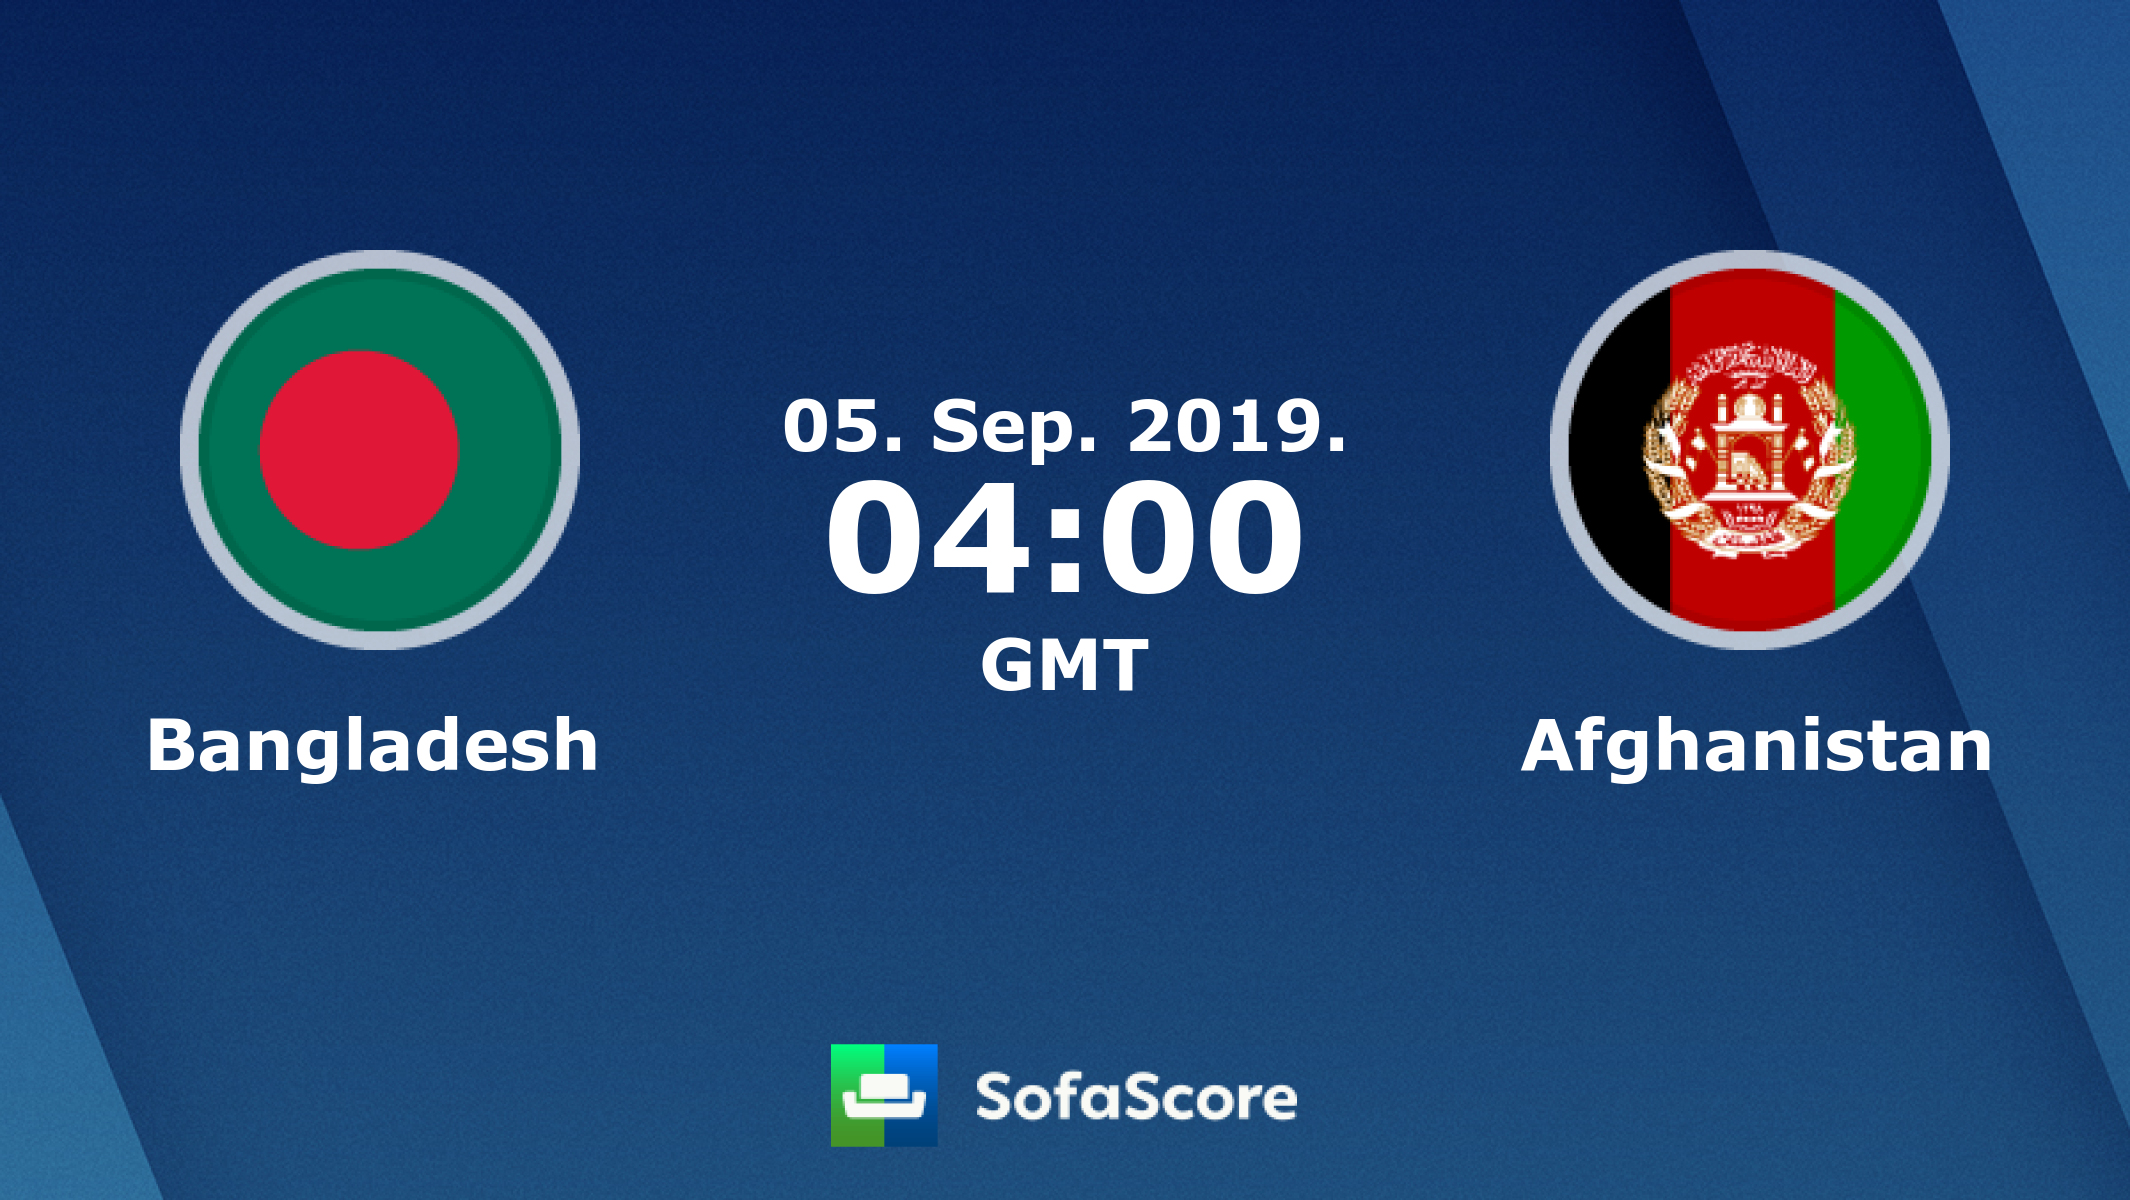 Bangladesh Afghanistan live score, video stream and H2H